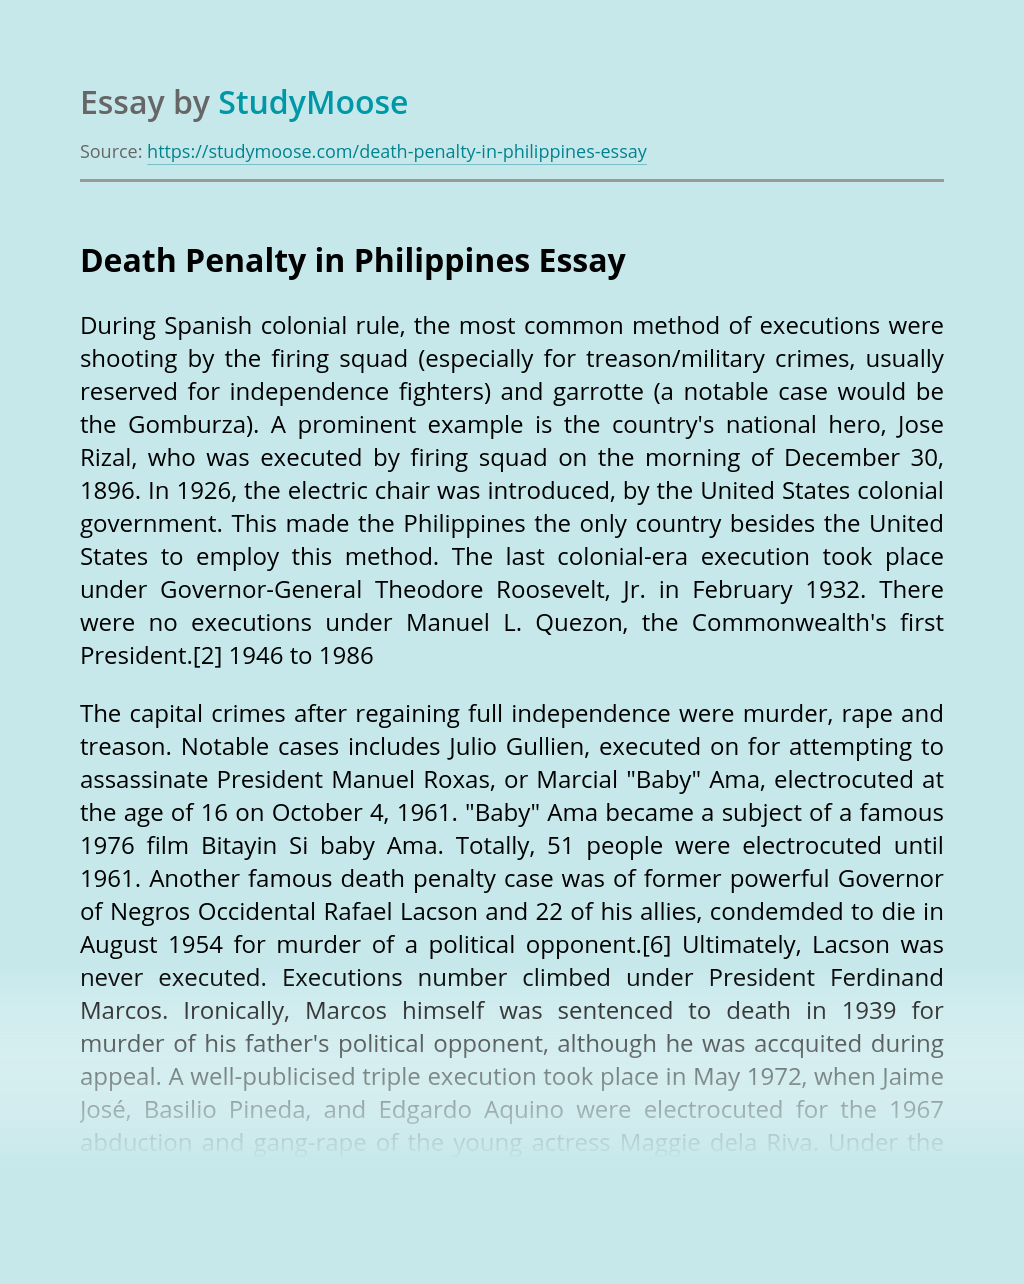 Death Penalty in Philippines